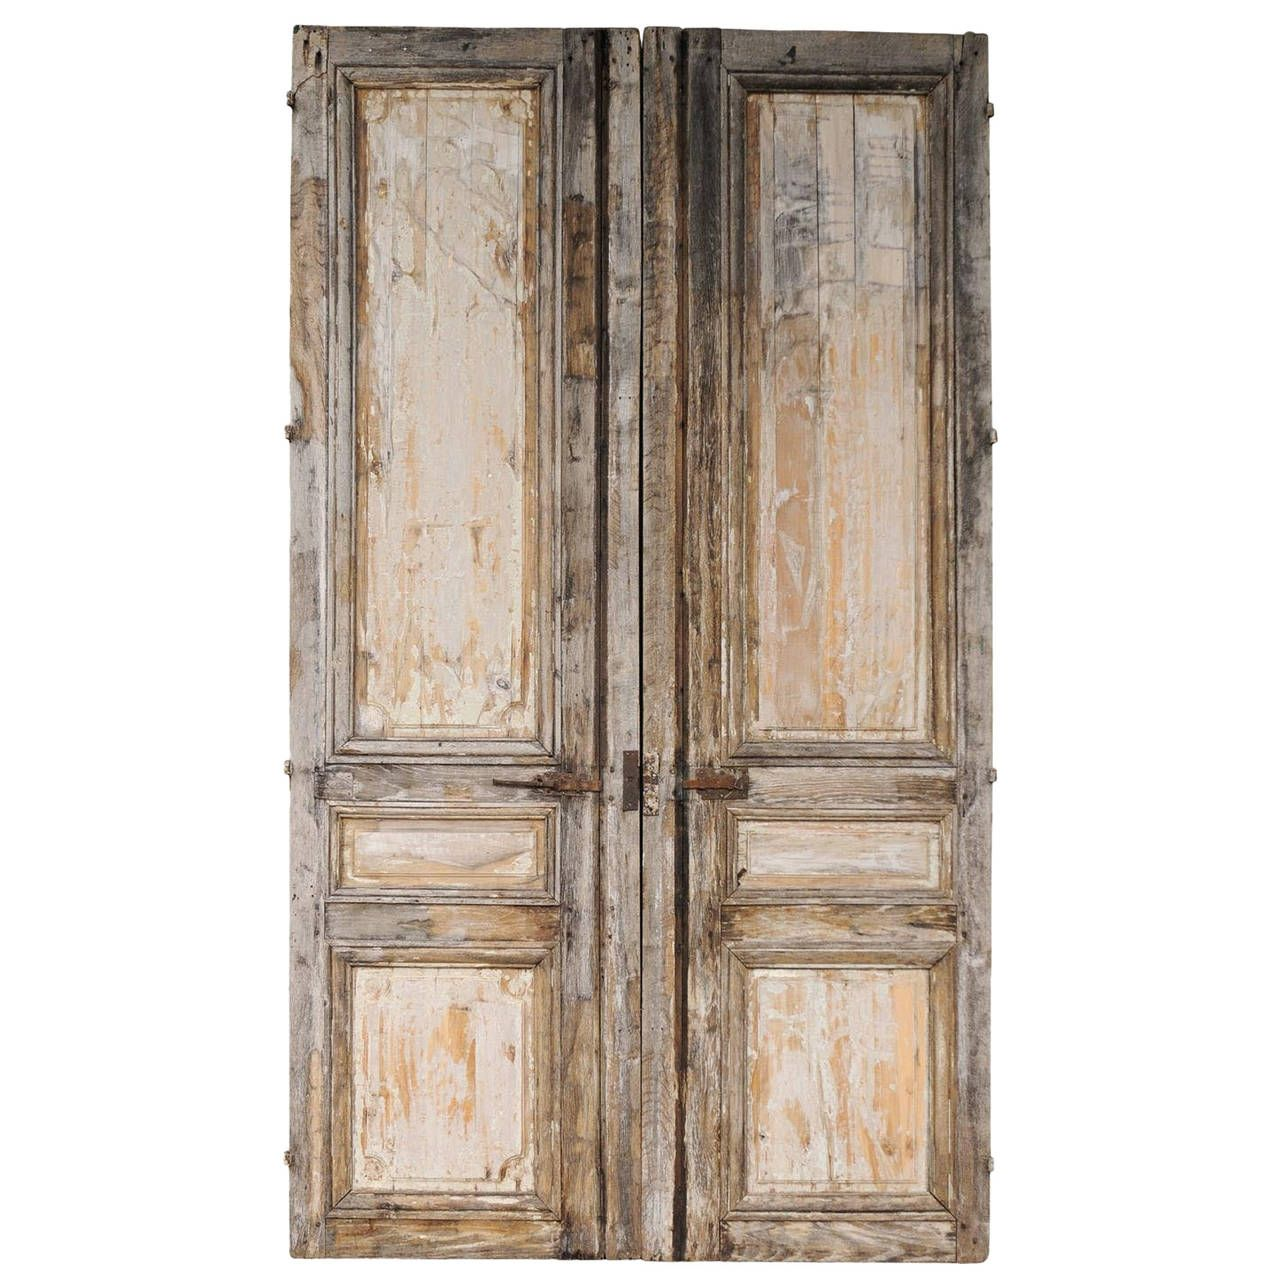 Pair Of 19th Century Wooden Doors From A Unique Collection Of Antique And Modern Doors And Gates At Https Www 1stdib Wooden Doors Vintage Doors Modern Door